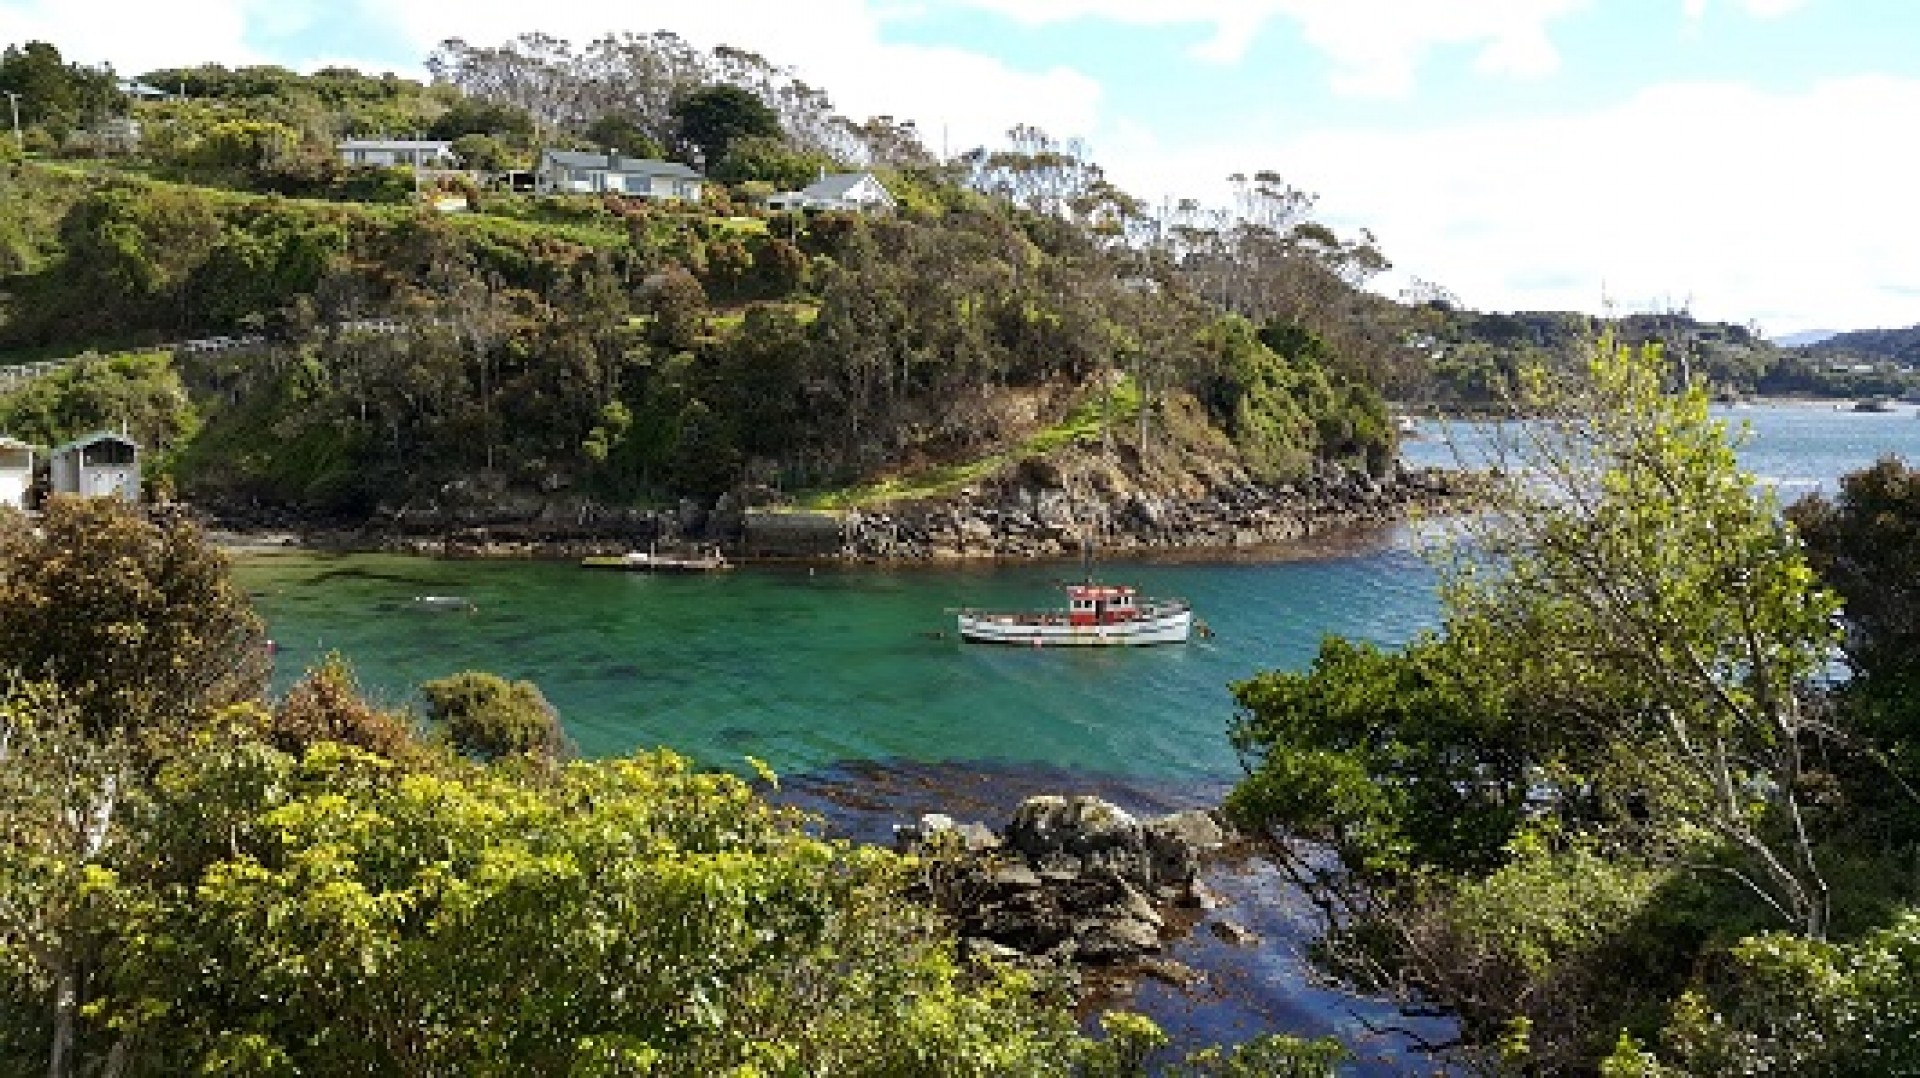 South of the South, Stunning Stewart Island